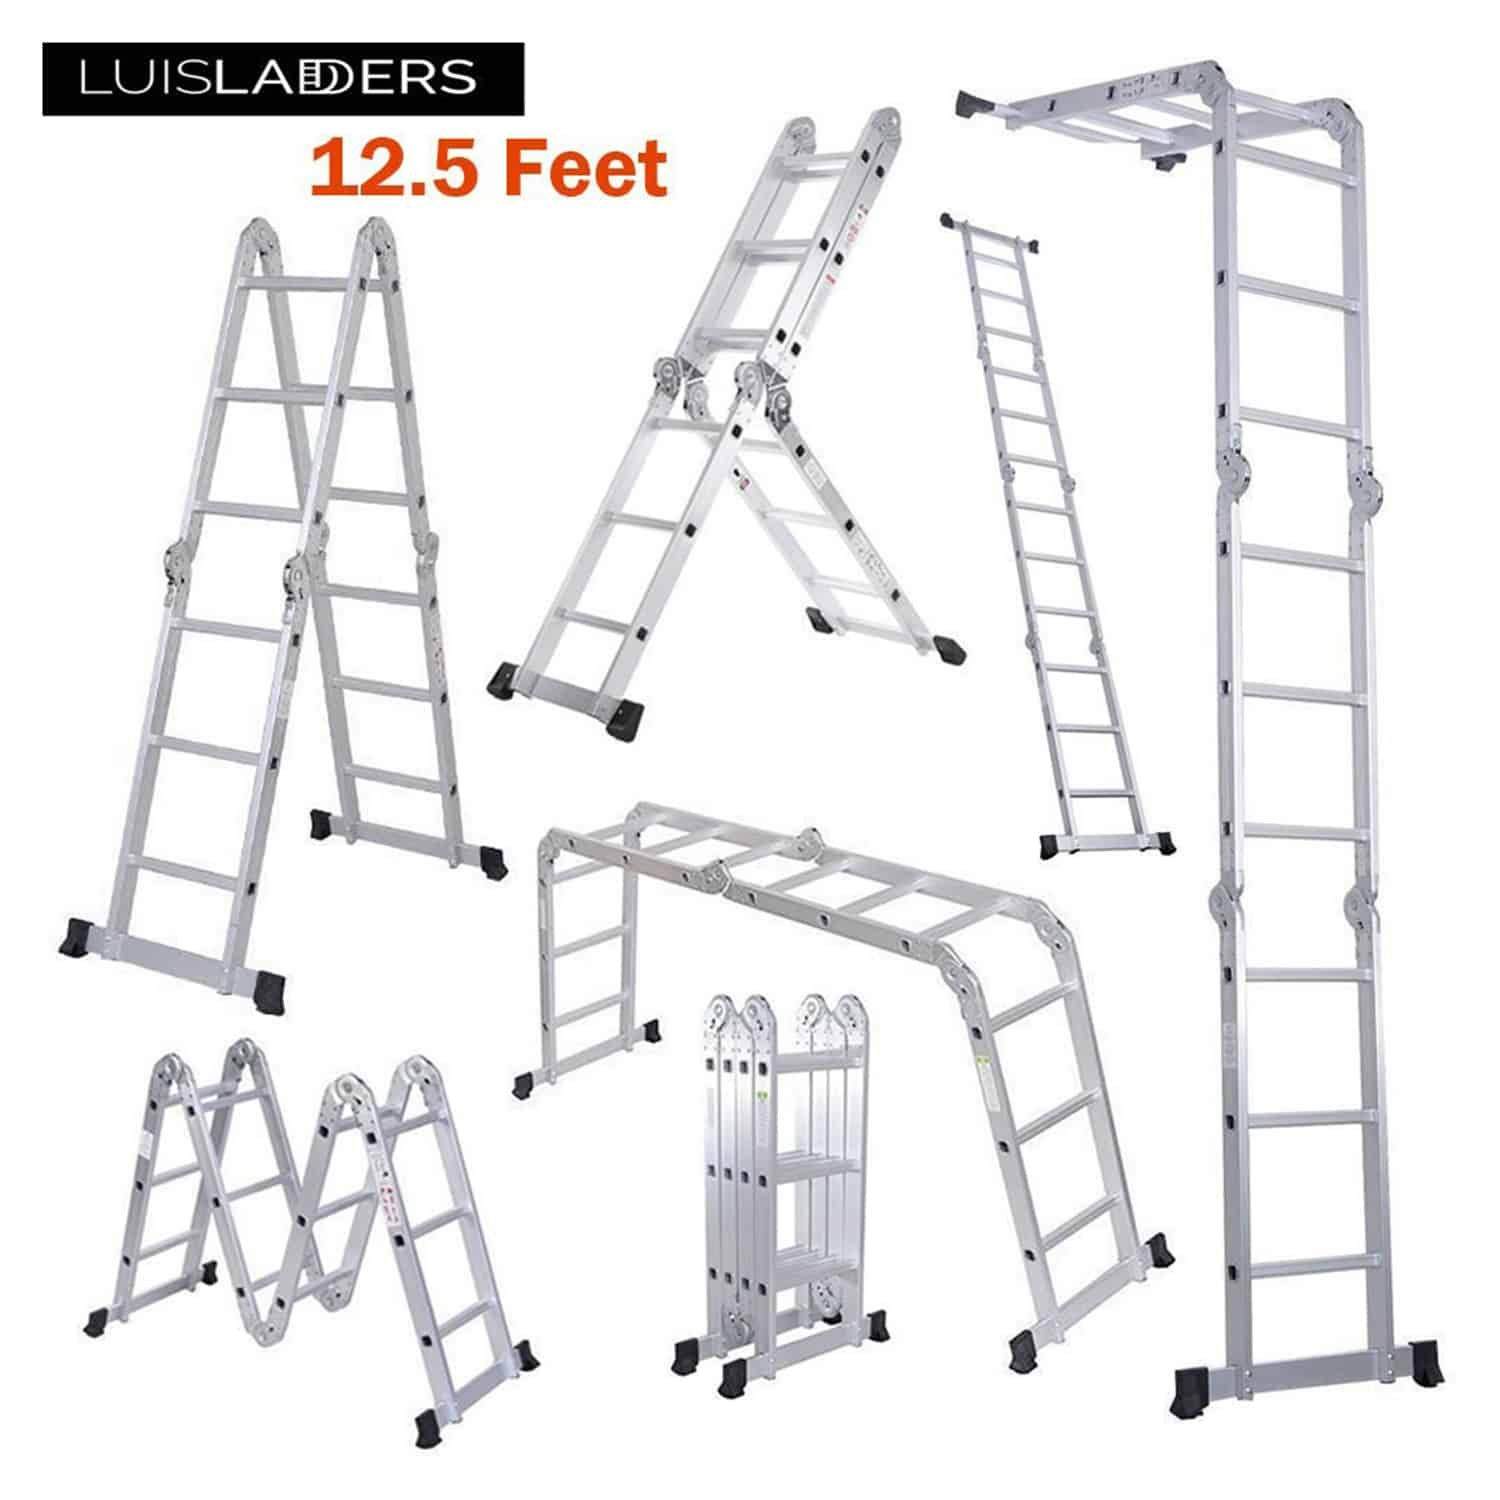 Luisladders Aluminum Safety Locking Hinges Multi Purpose Folding Extendable Multi Purpose Ladder Ladder Aluminium Ladder